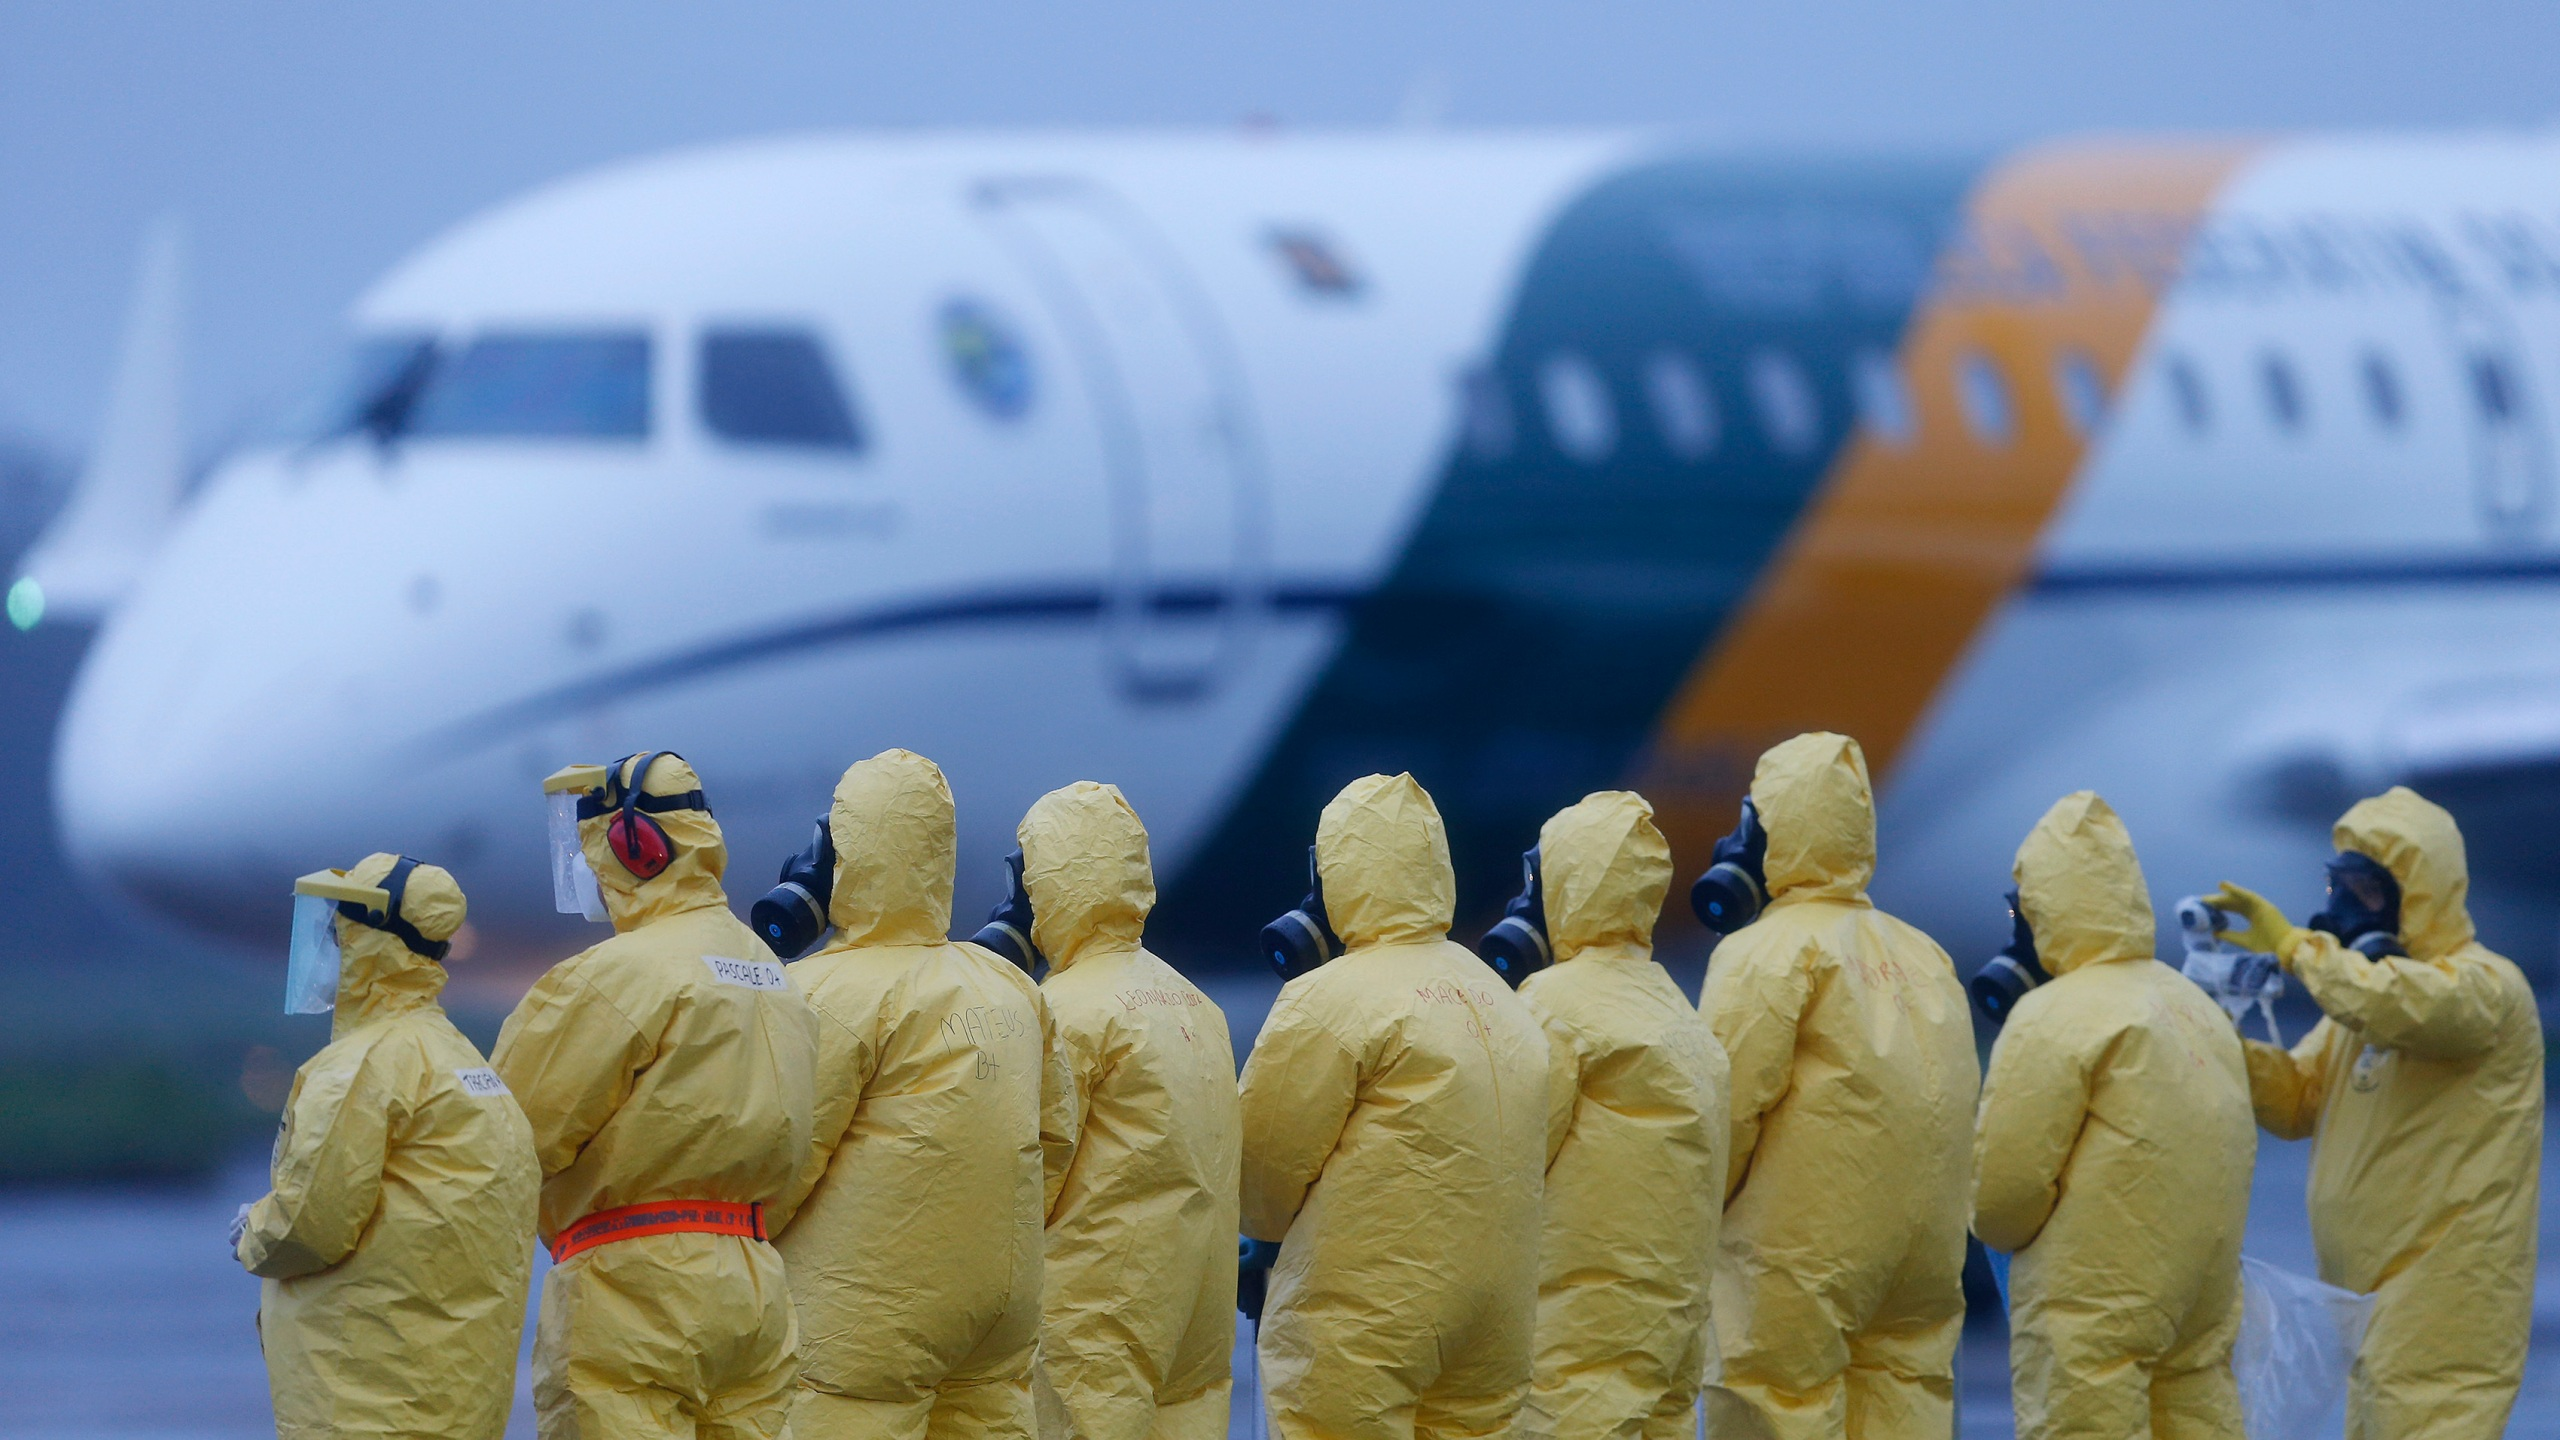 An'polis/ GO - Brazilians removed from Wuhan, China, the epicenter of the worldwide coronavirus outbreak, landed at the An'polis Air Base on February 09, 2020. After disembarking, passengers and crew, will remain isolated in a building at the air base in an eighteen-day quarantine. Beto Barata/ AP